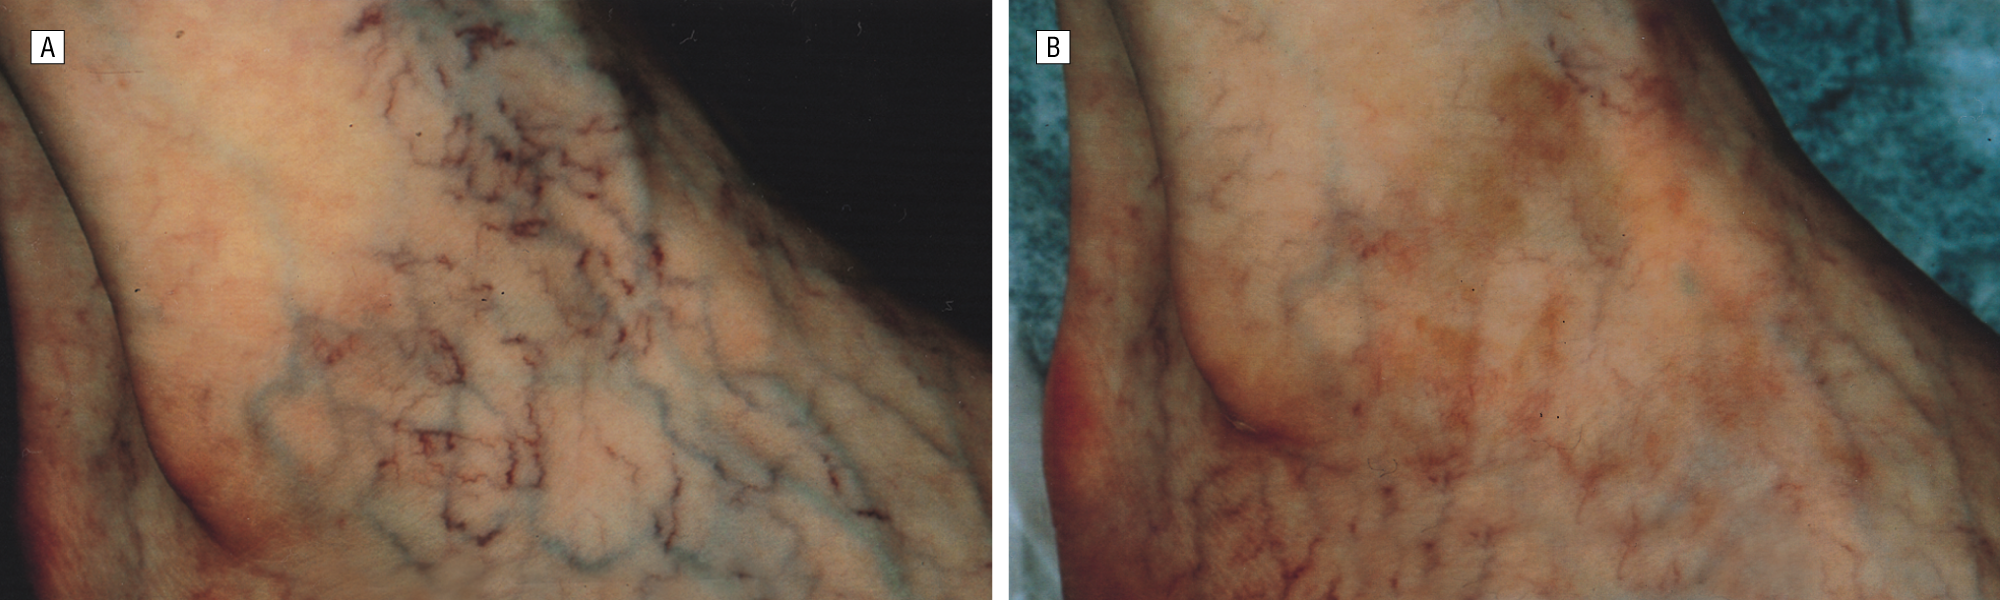 Pulsed Alexandrite Laser For The Treatment Of Leg Telangiectasia And